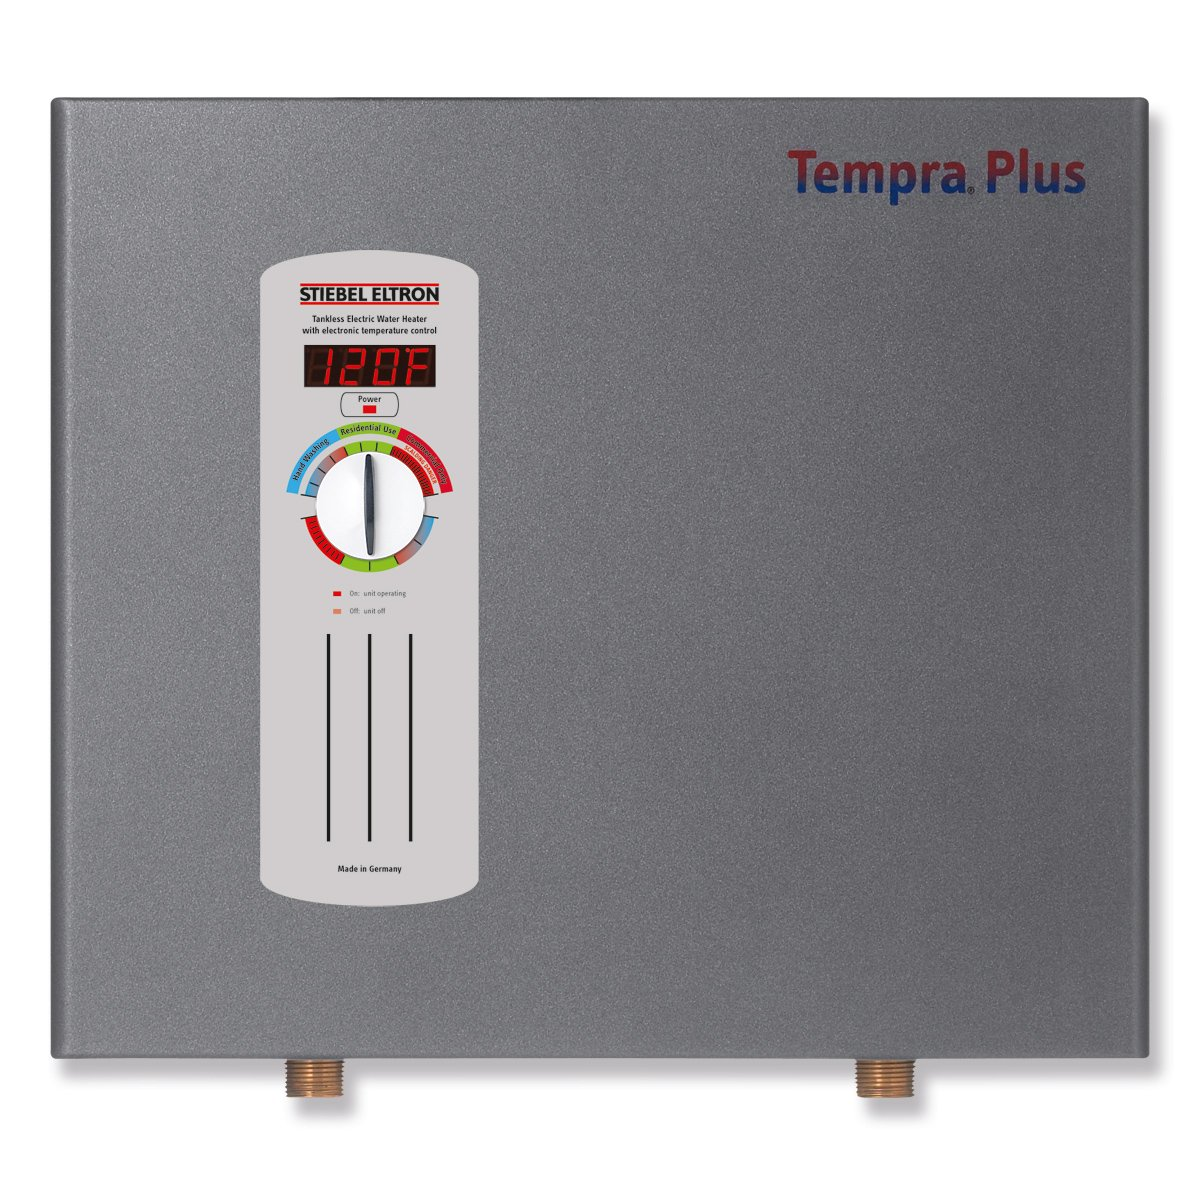 Stiebel Eltron Tempra 24 Plus Electric Tankless Whole House Water Heater, 240 V, 24 kW